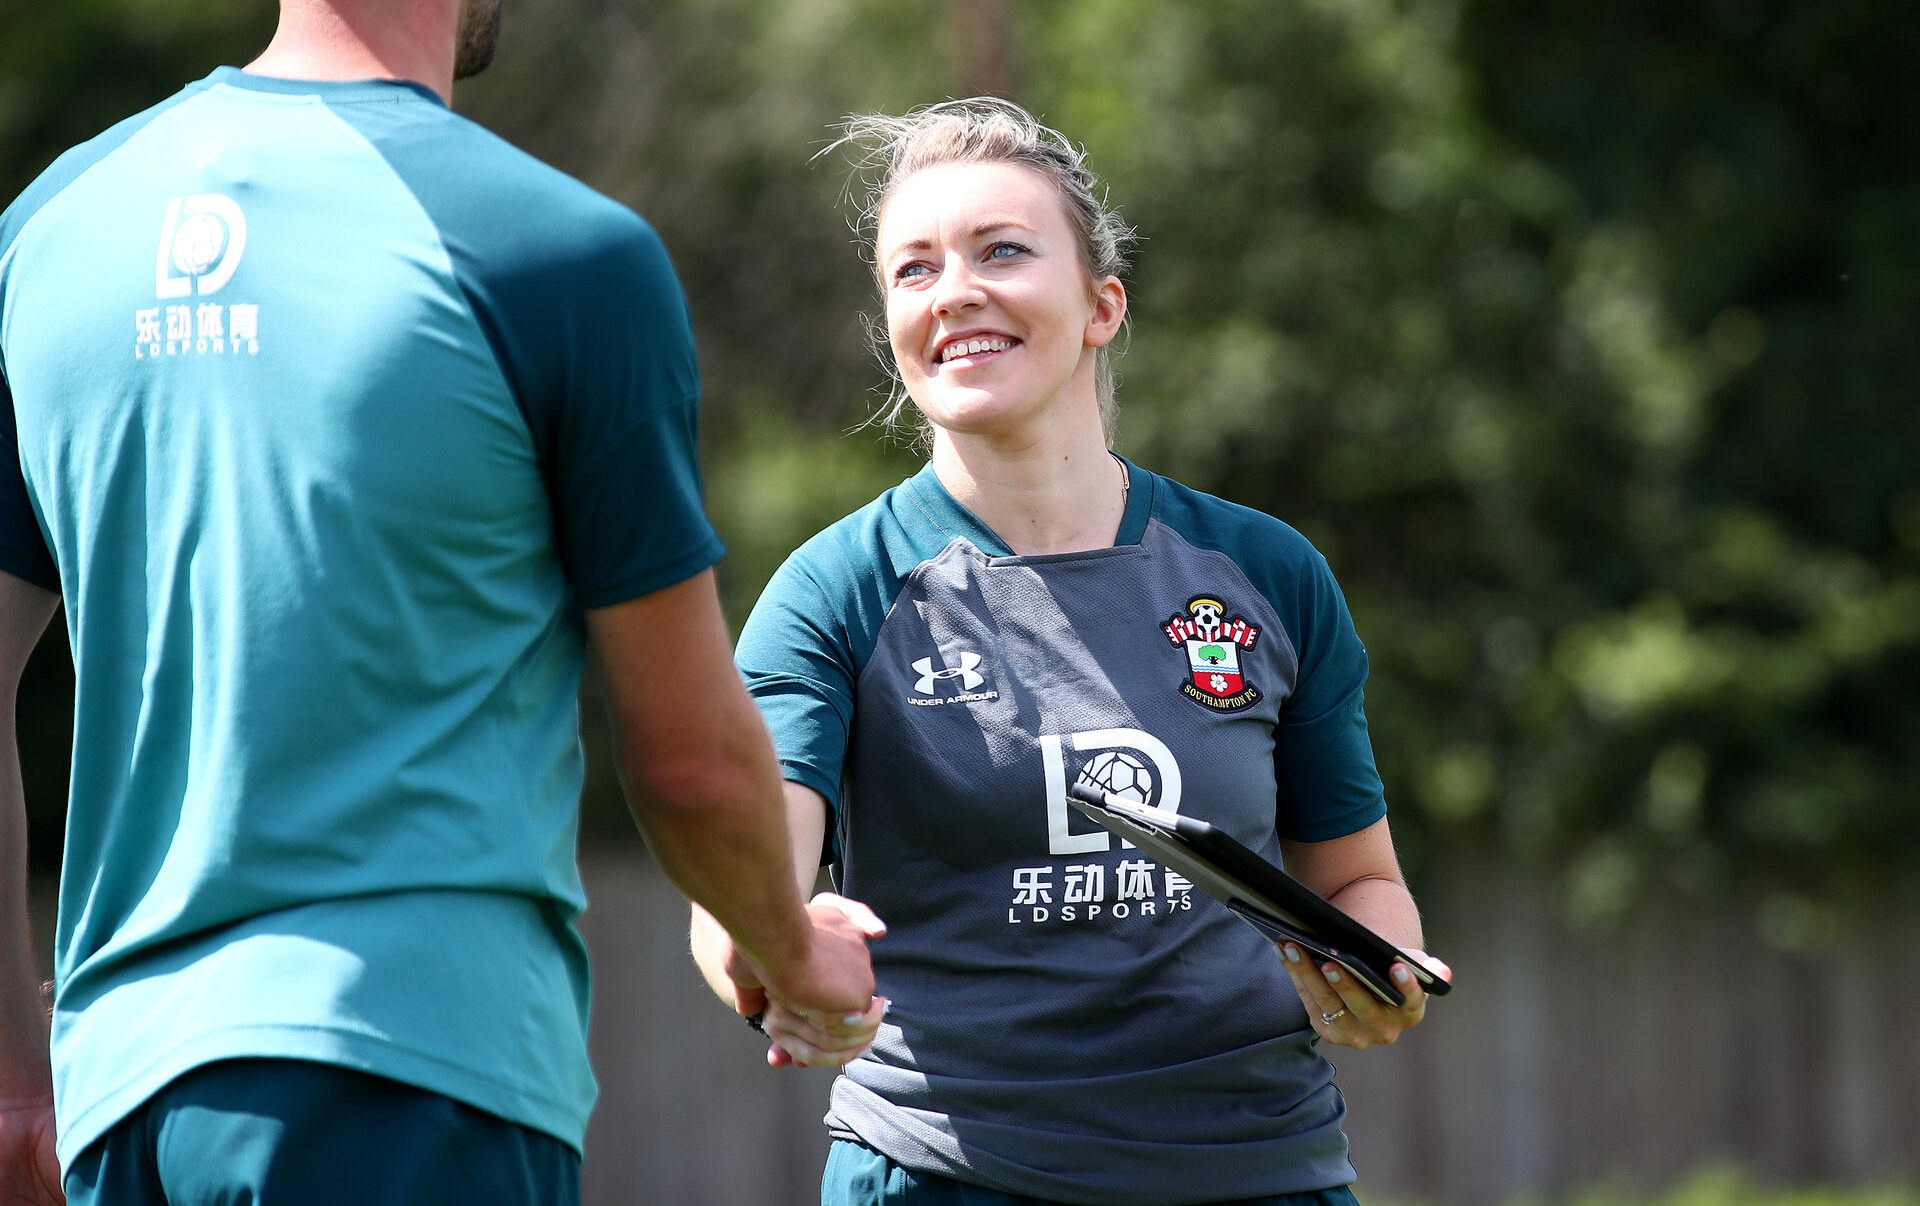 SOUTHAMPTON, ENGLAND - JULY 02: Laura Bowen during Southampton FC's second day of pre season training at the Staplewood Campus on July 02, 2019 in Southampton, England. (Photo by Matt Watson/Southampton FC via Getty Images)